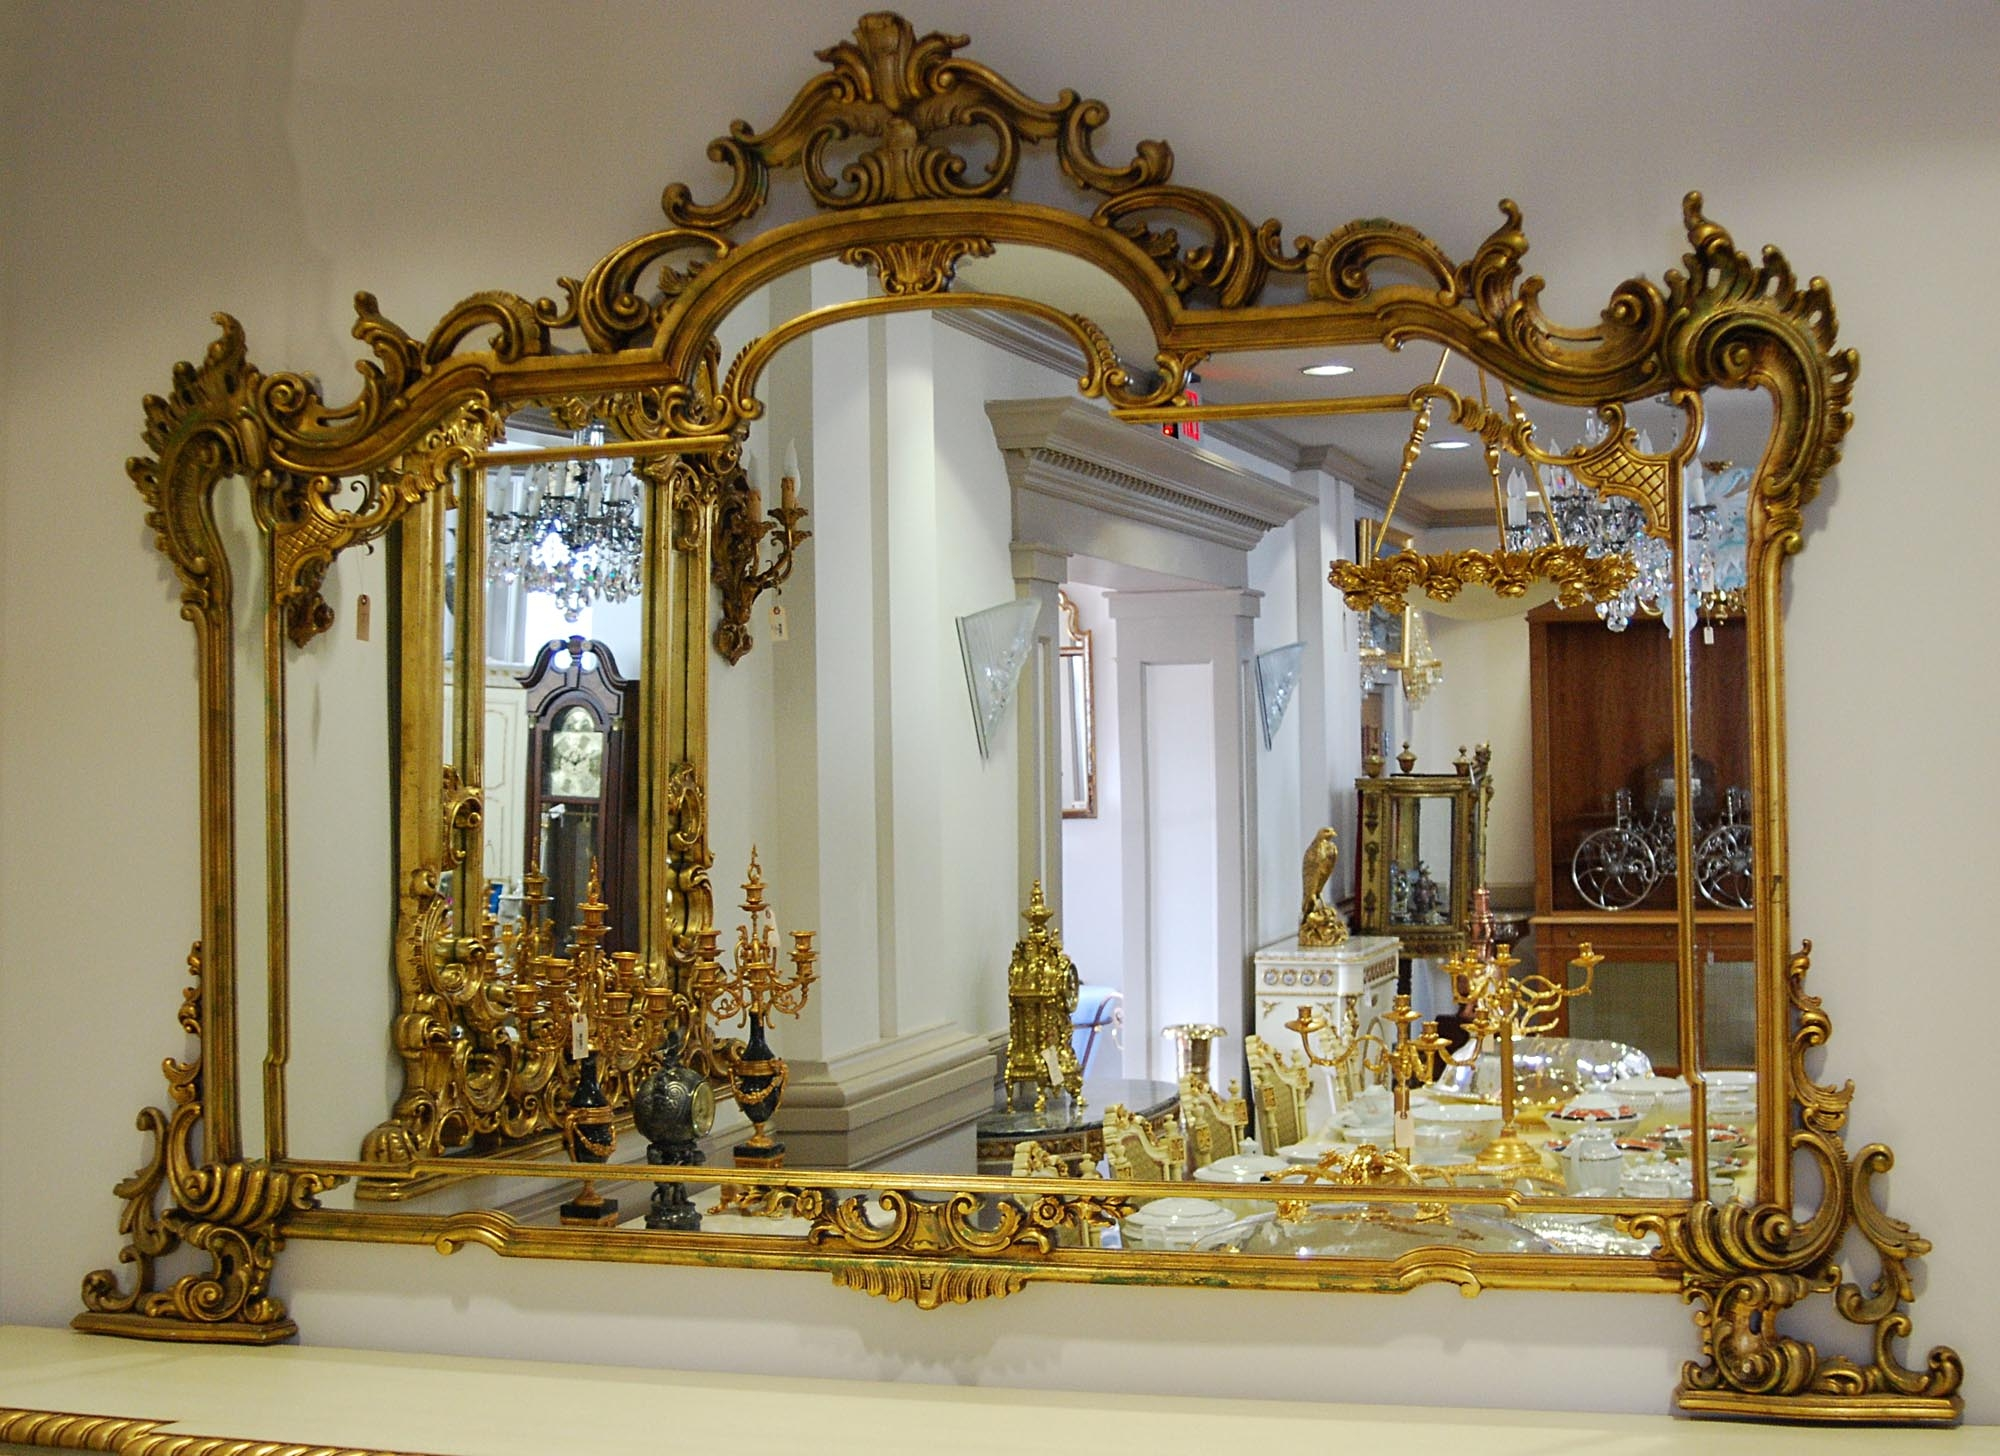 Italian Rococo Mirror Stuff To Buy Pinterest Architecture Throughout Rococo Mirror Cheap (Image 9 of 15)